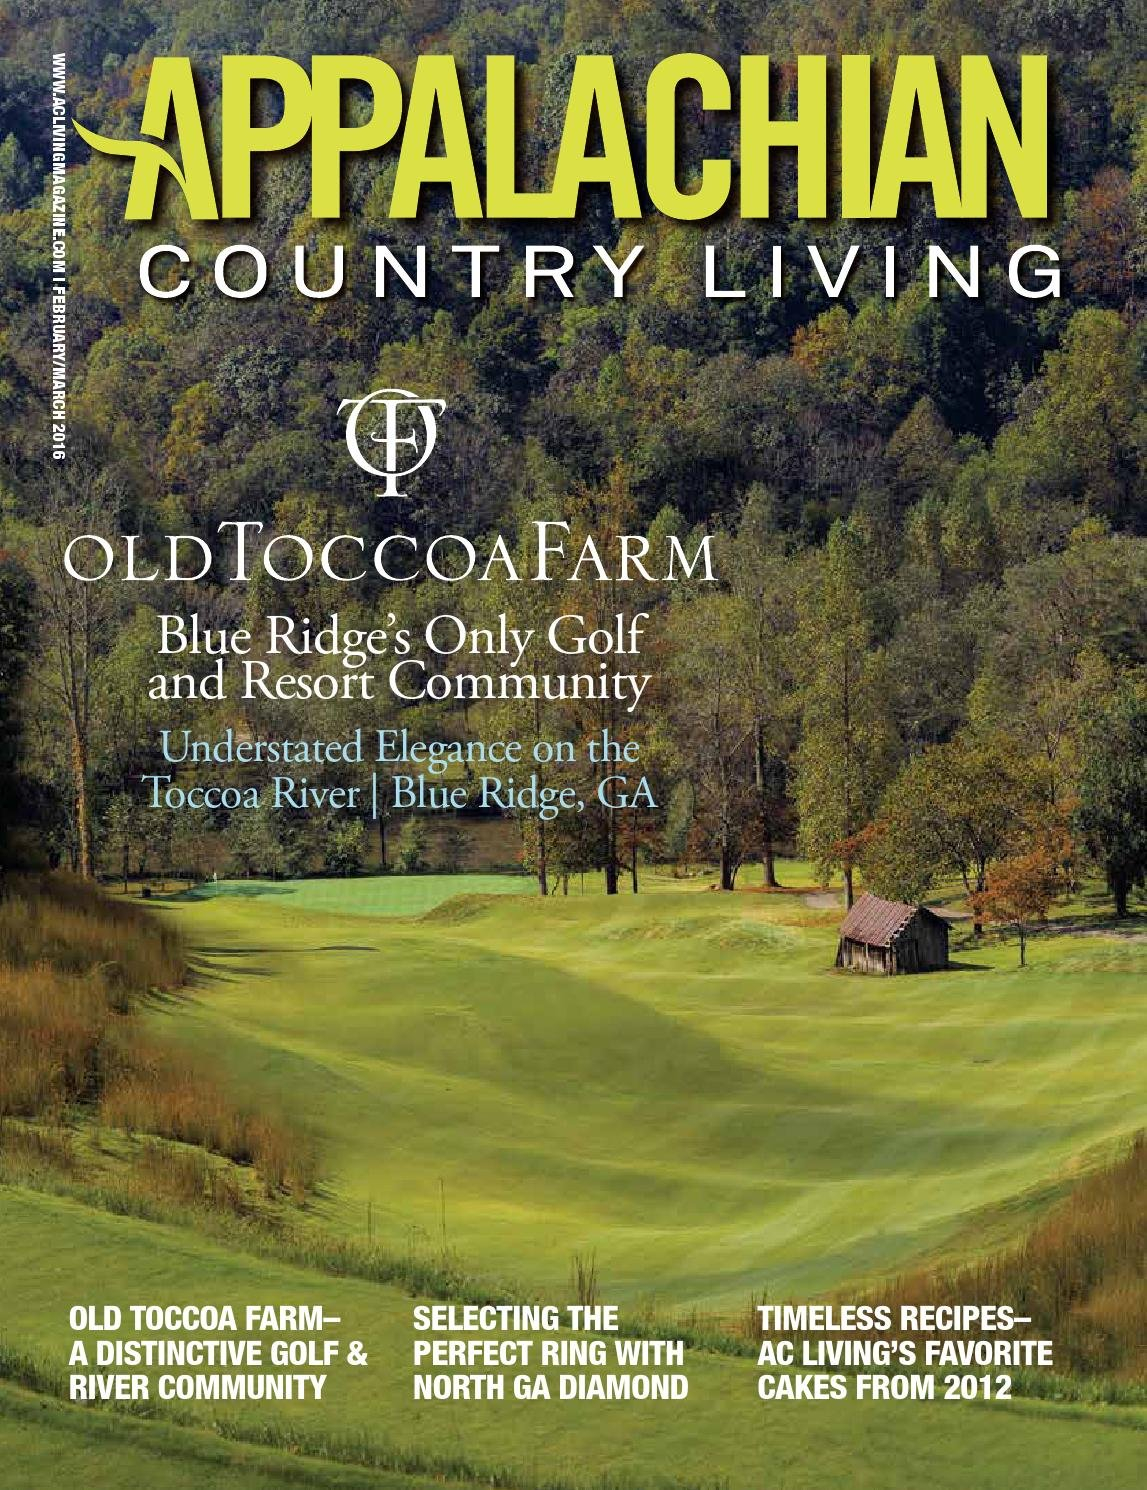 Appalachian Country Living Magazine December 2015/January Understated Calendar In Publisher